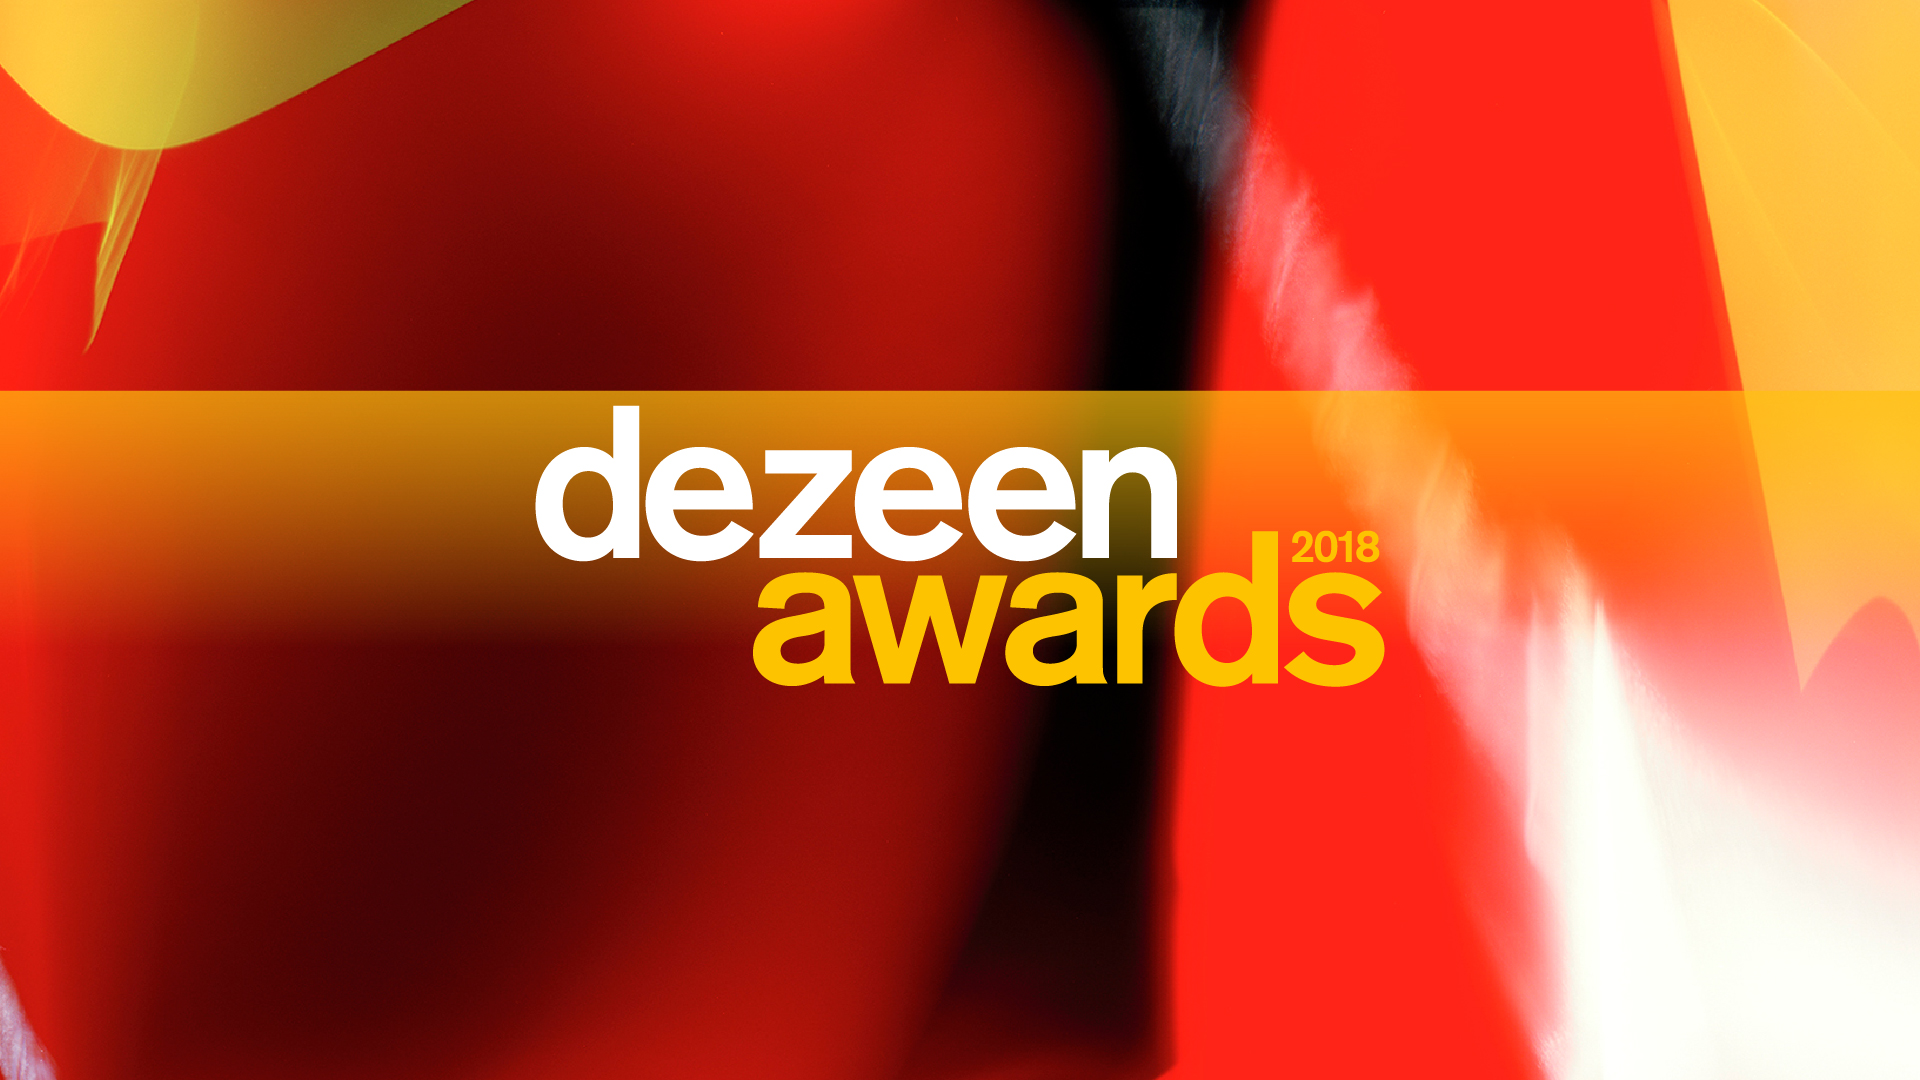 DEZAwards18-OTHER-16x9-1920x1080-1.jpg